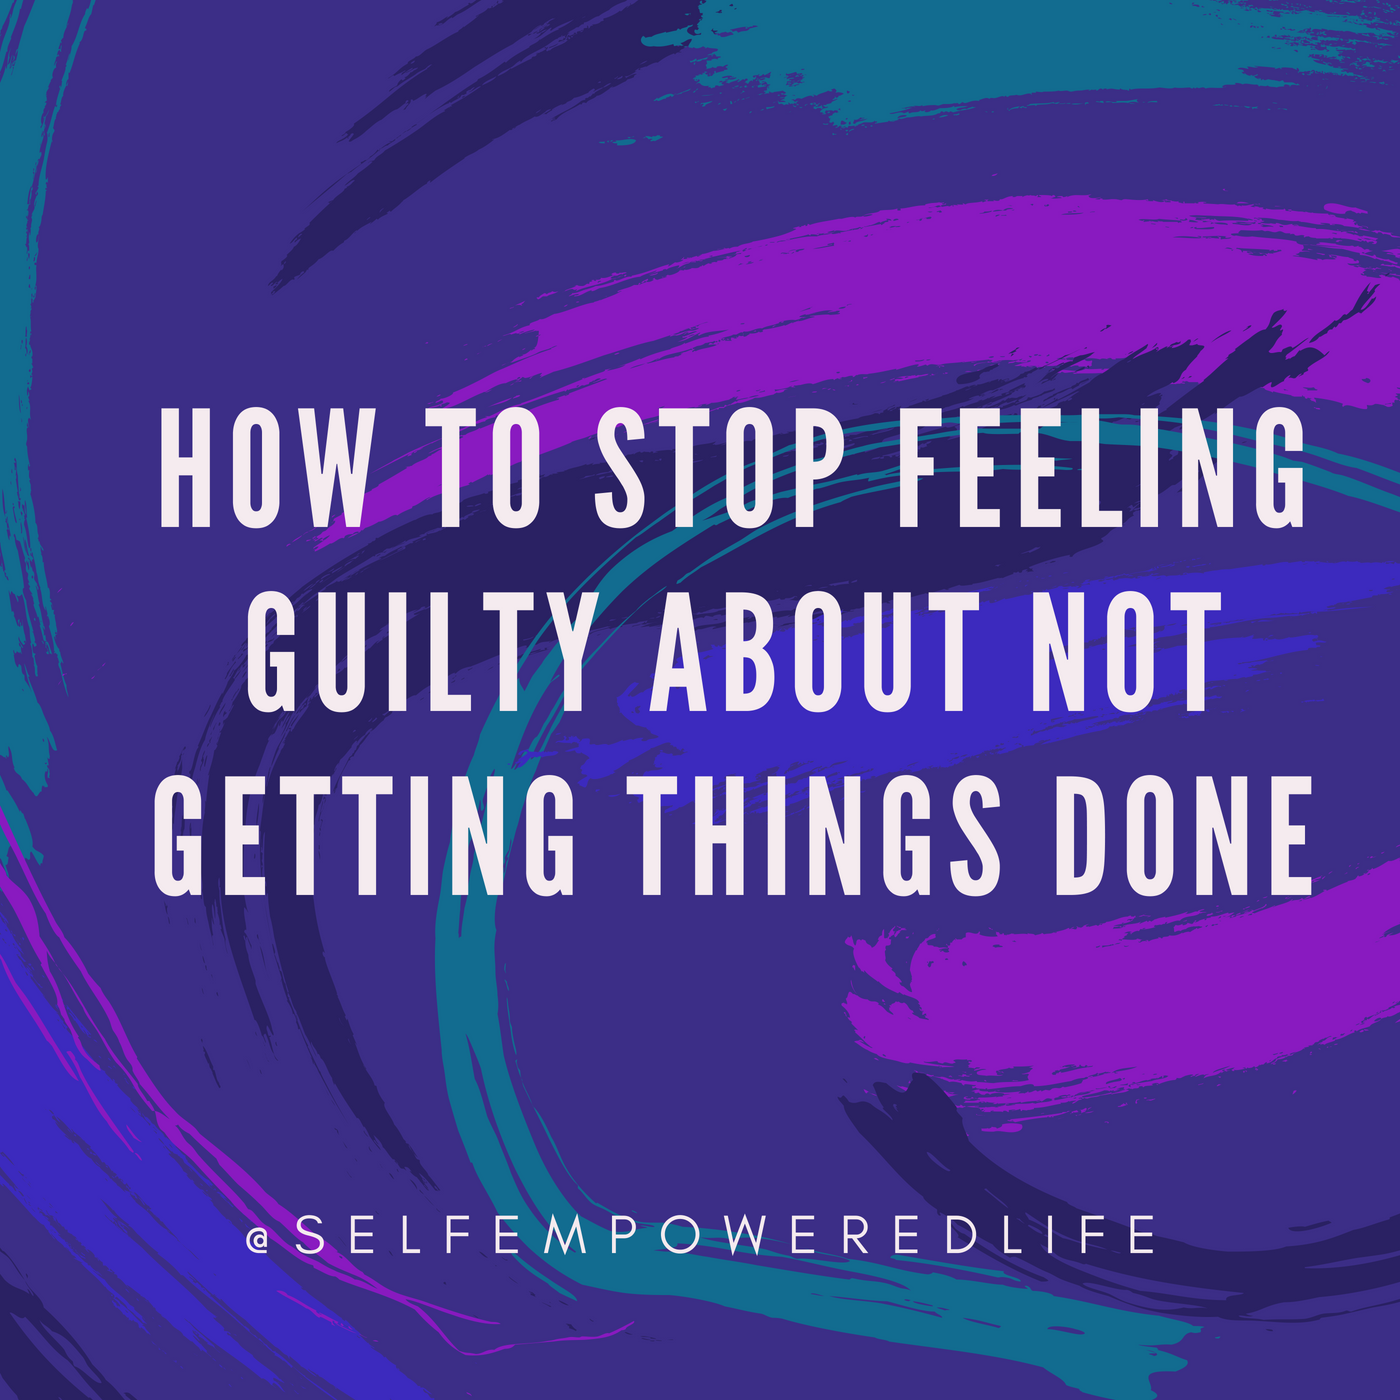 how to stop life feeling empty